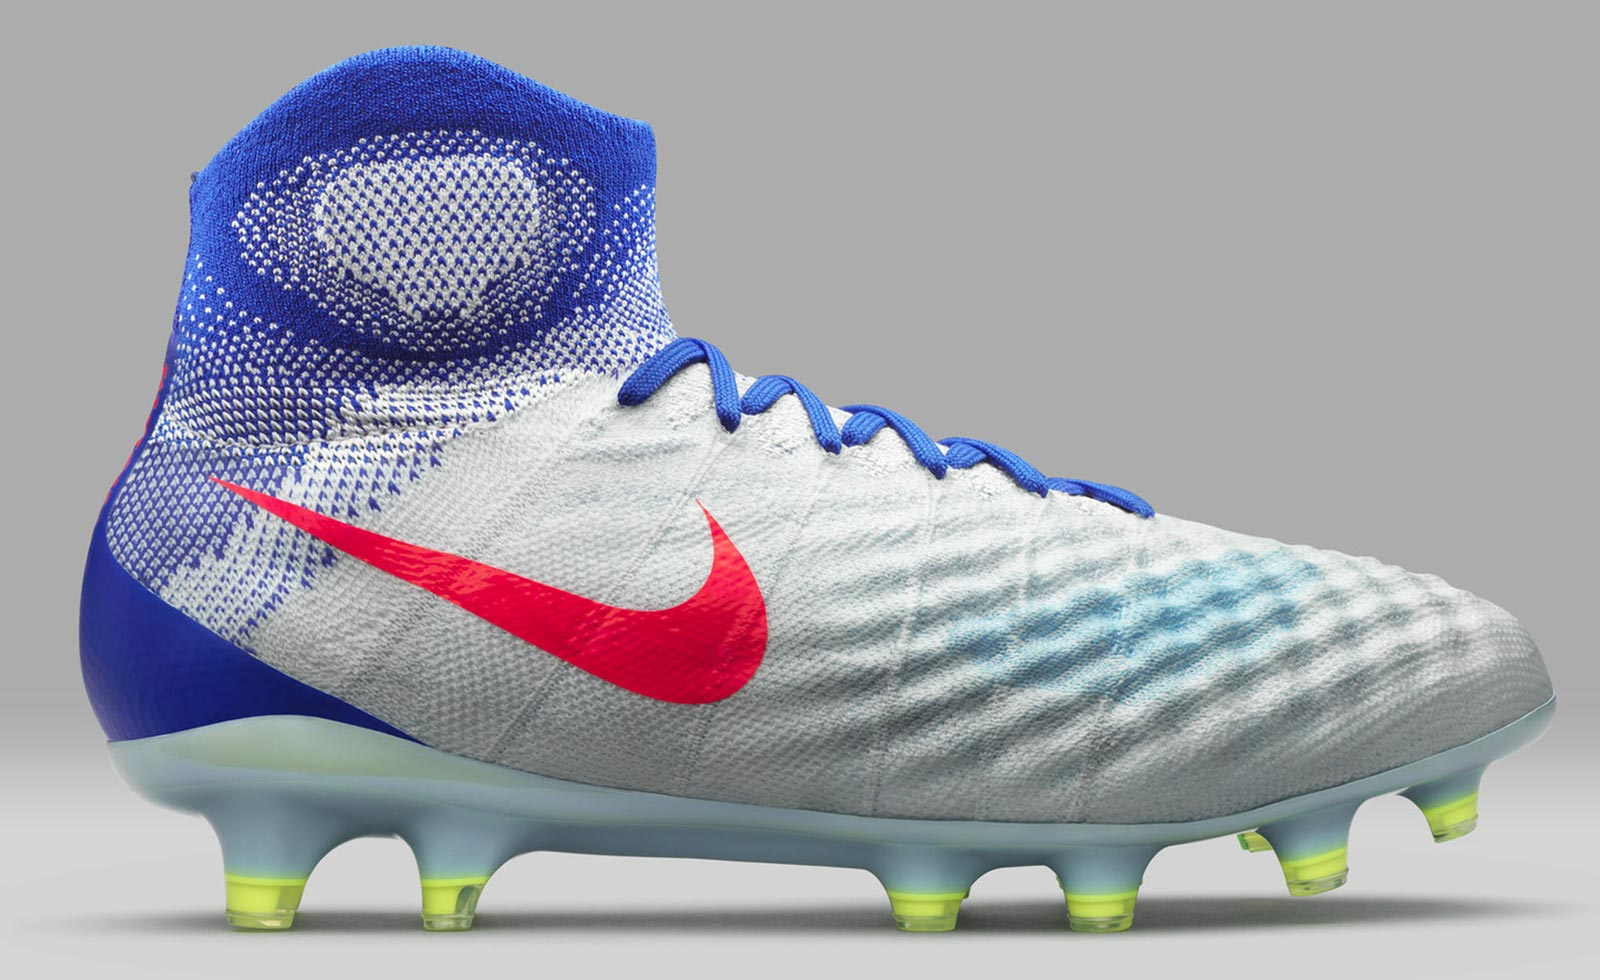 nike magista obra 2 2016 olympics boots revealed footy headlines. Black Bedroom Furniture Sets. Home Design Ideas